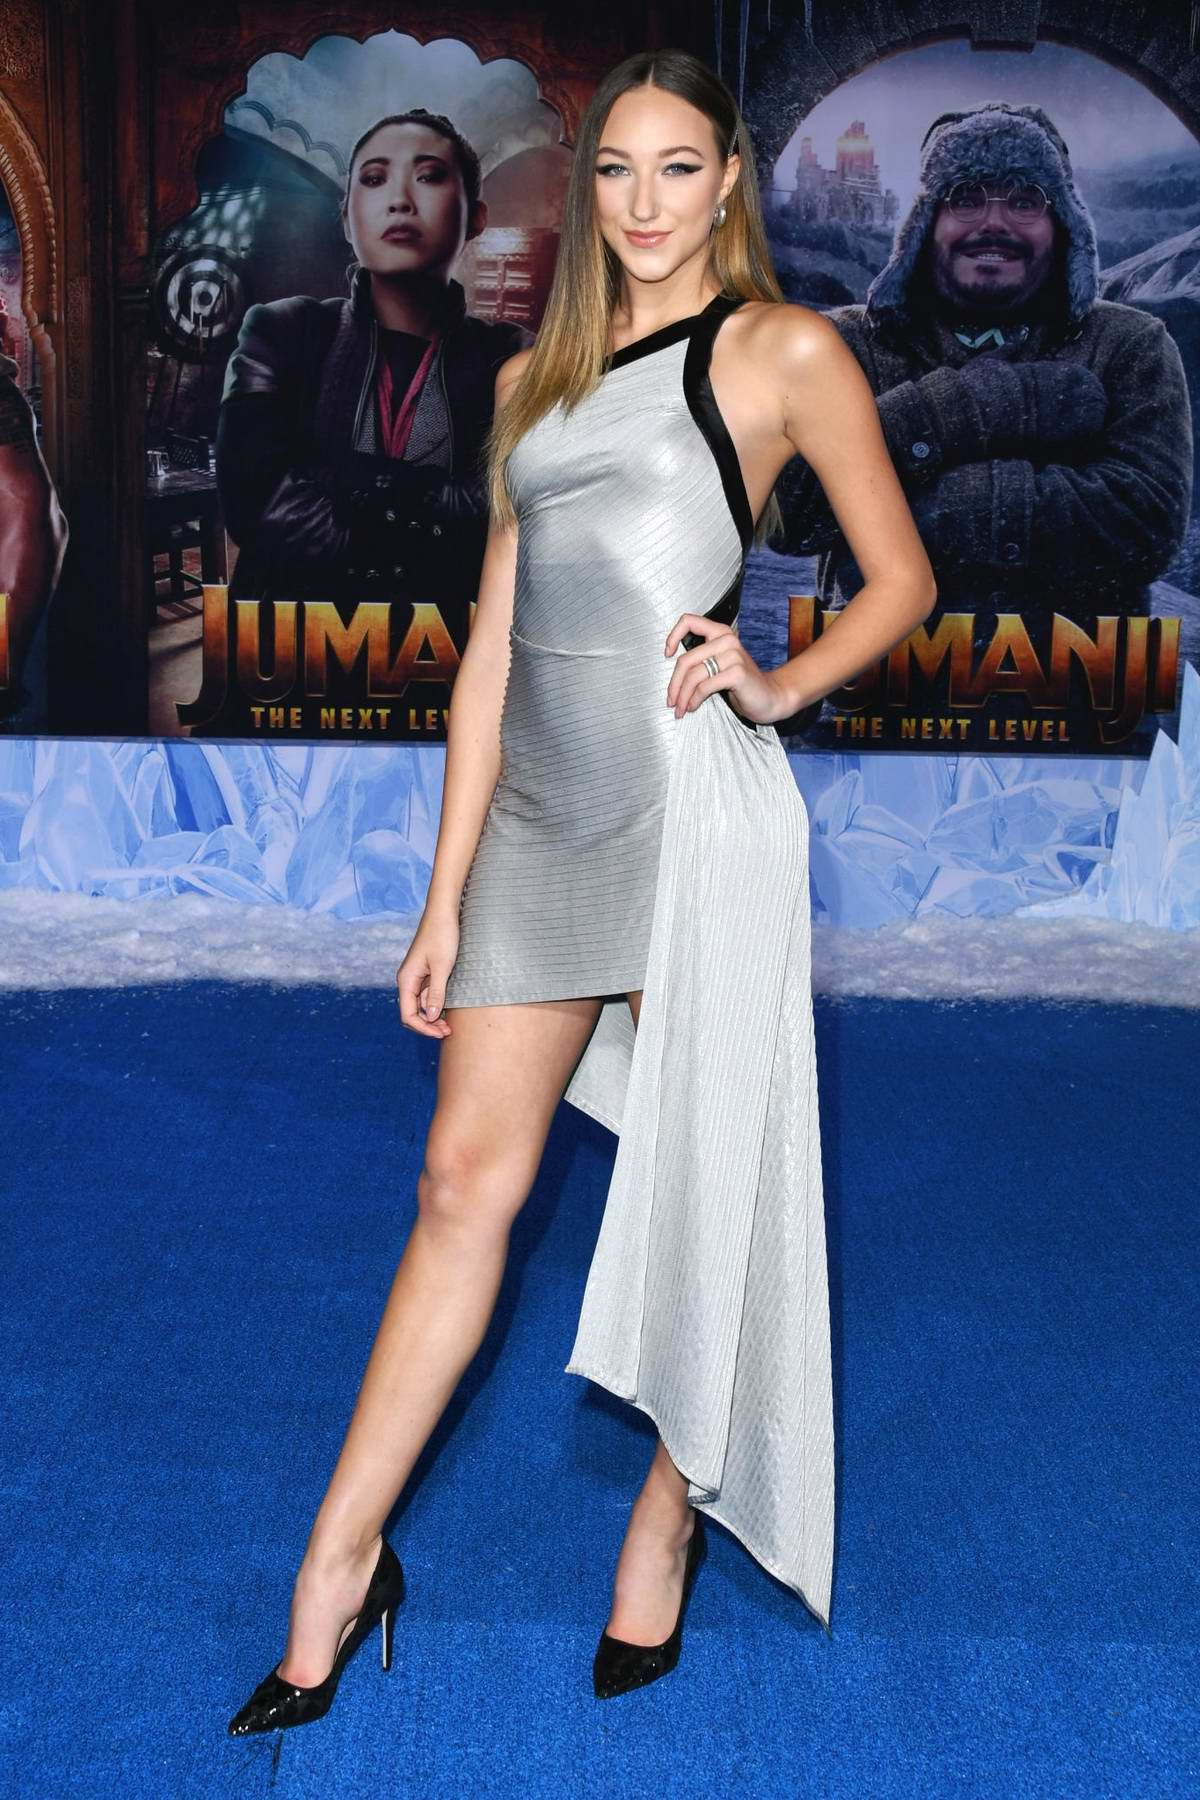 Ava Michelle attends the Premiere of 'Jumanji: The Next Level' at TCL Chinese Theatre in Hollywood, California